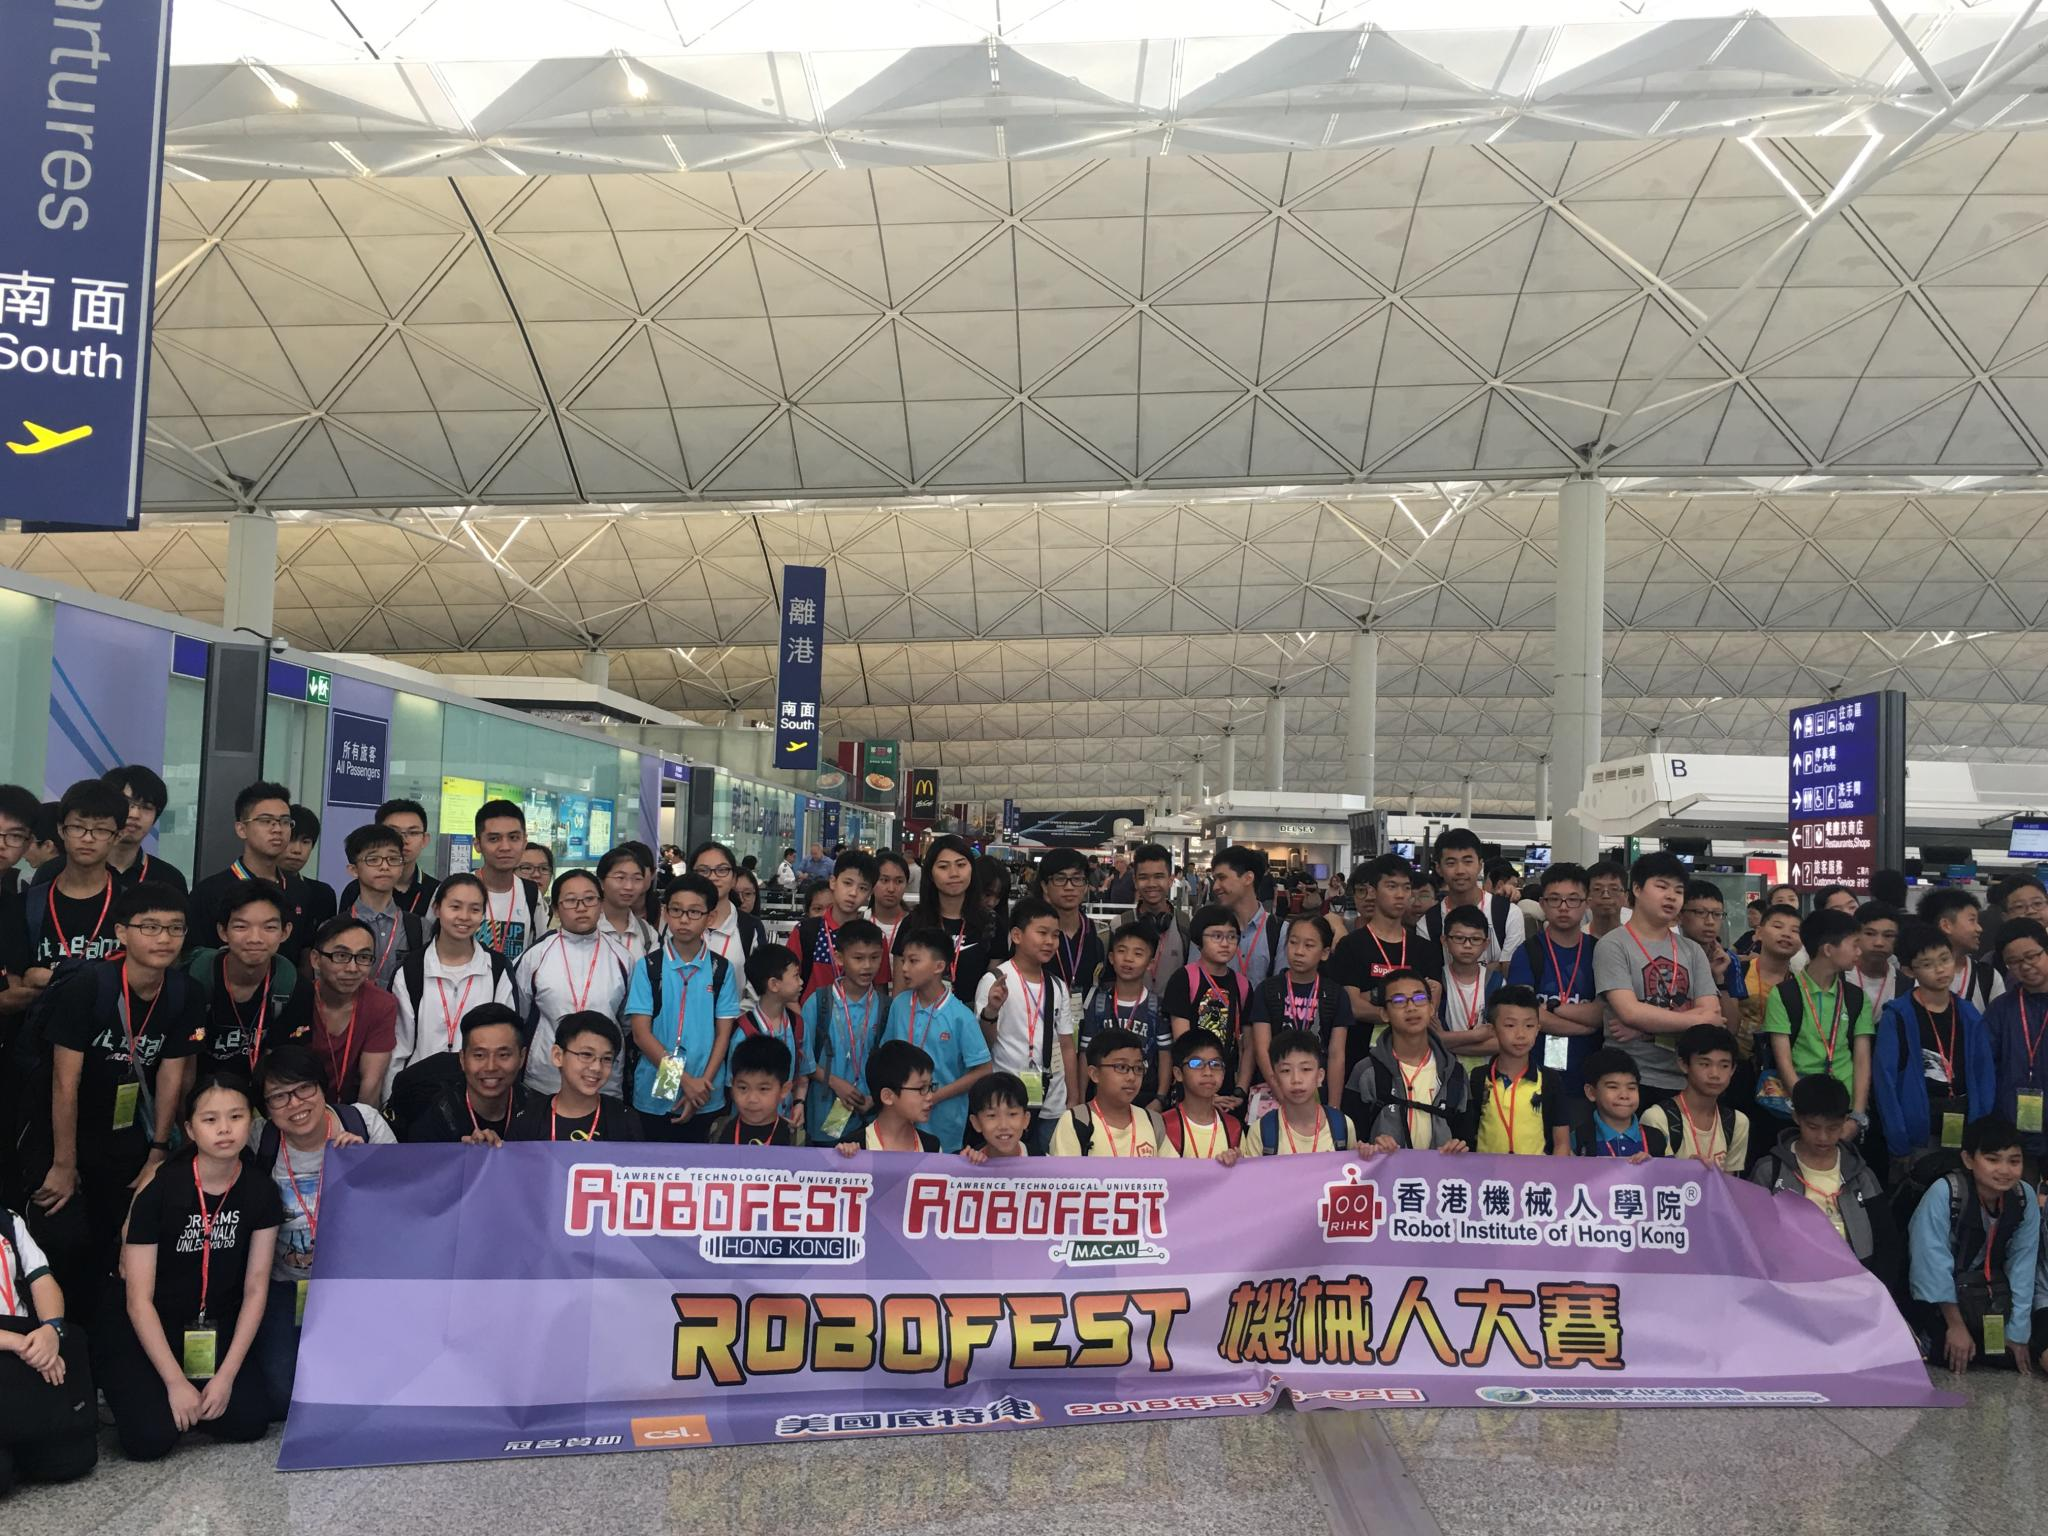 Leaving Hong Kong with participants from other schools.